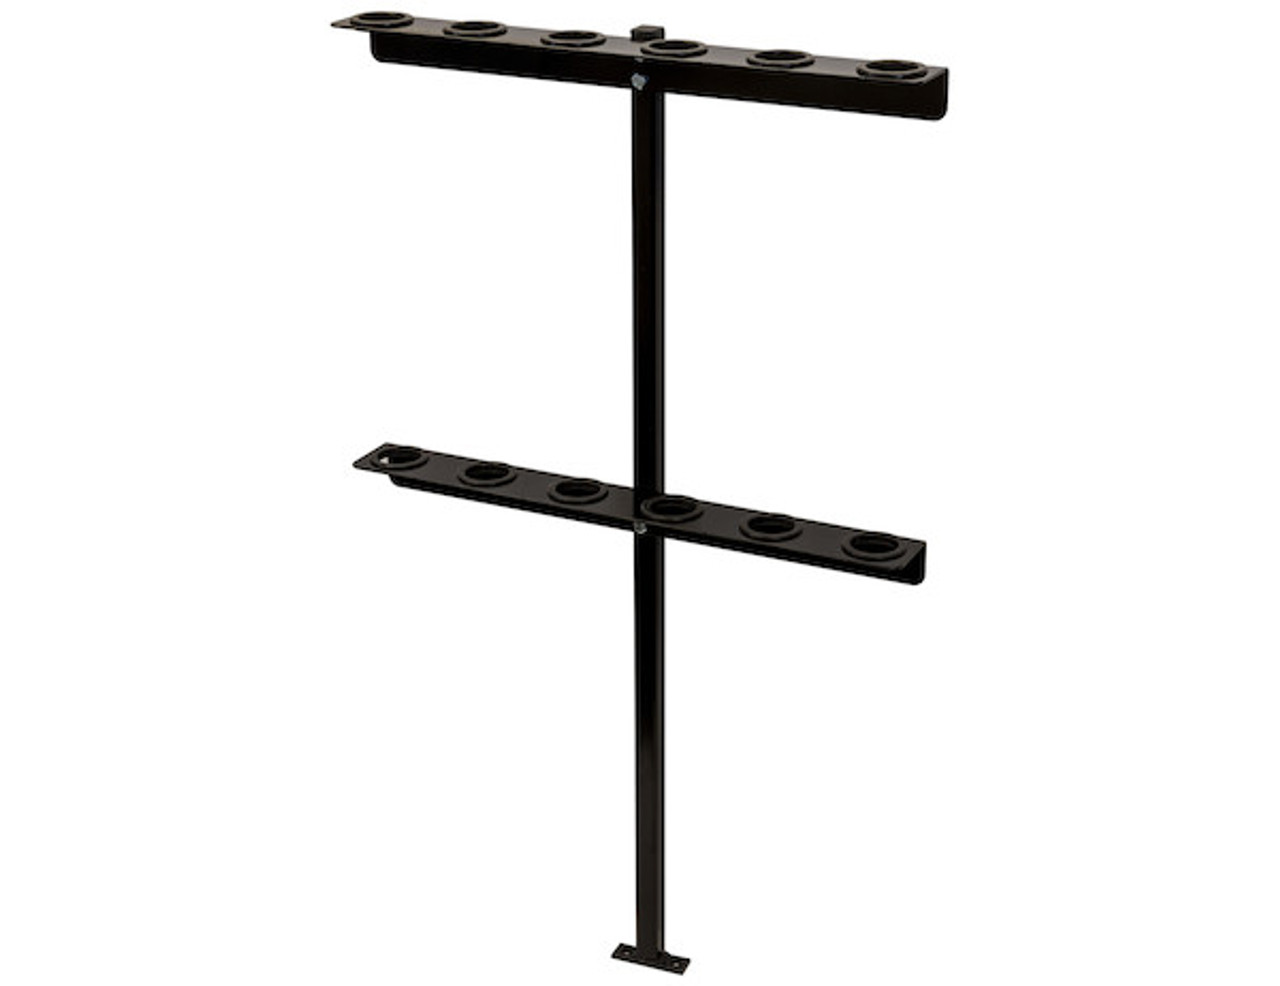 Buyers LT35 Vertical Hand Tool Rack for Landscaping Trailers, Garages, Sheds, Construction Vehicles Picture # 1